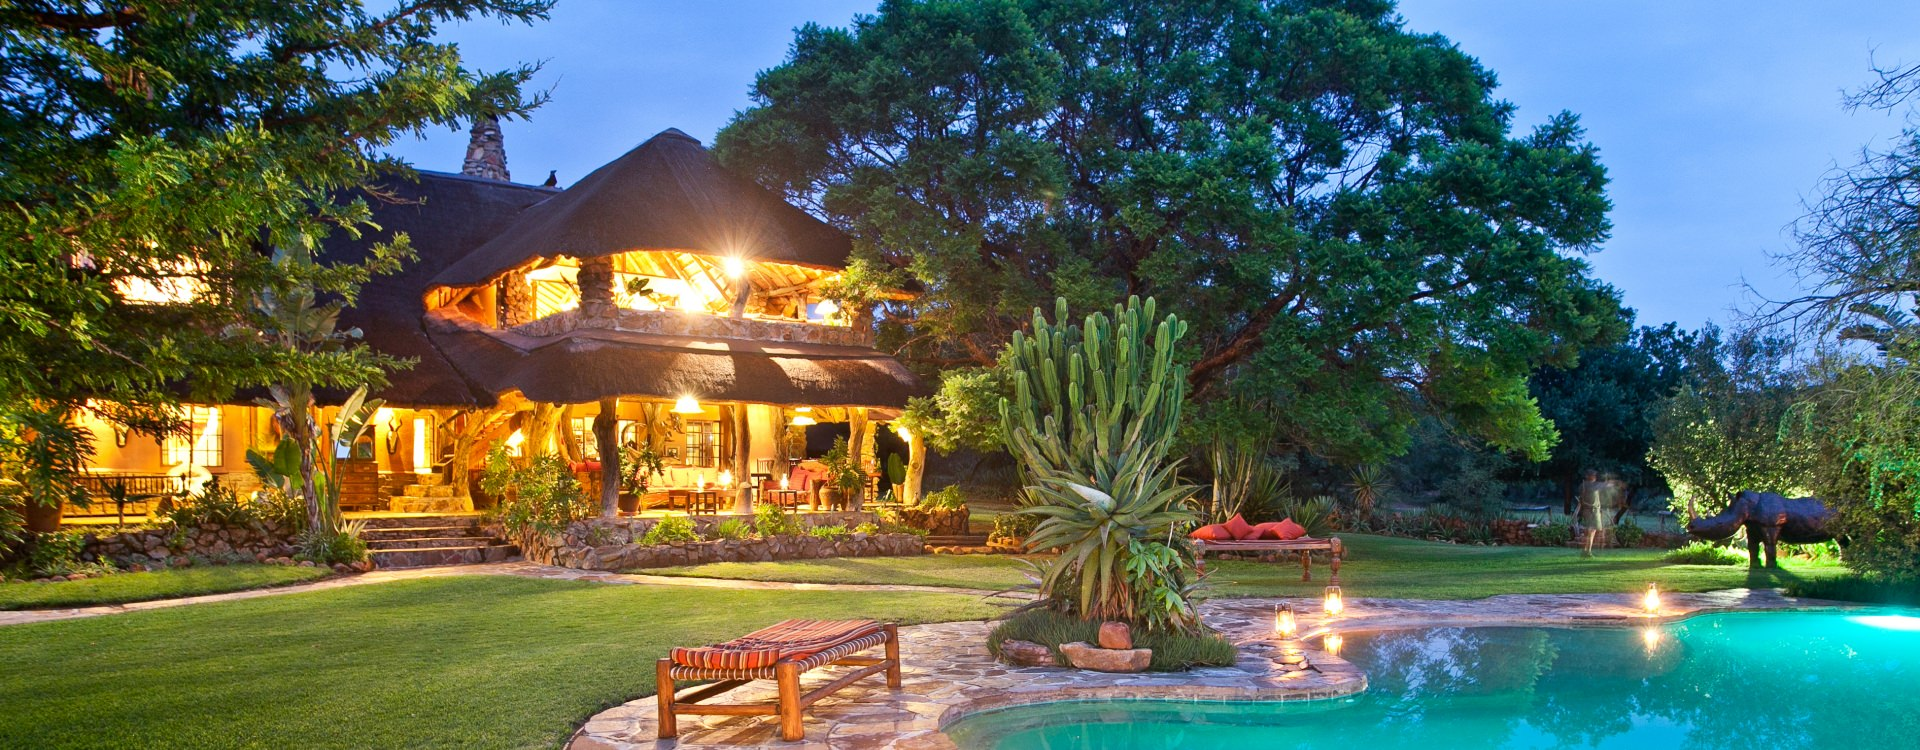 Ant's Nest Lodge - Waterberg, South Africa